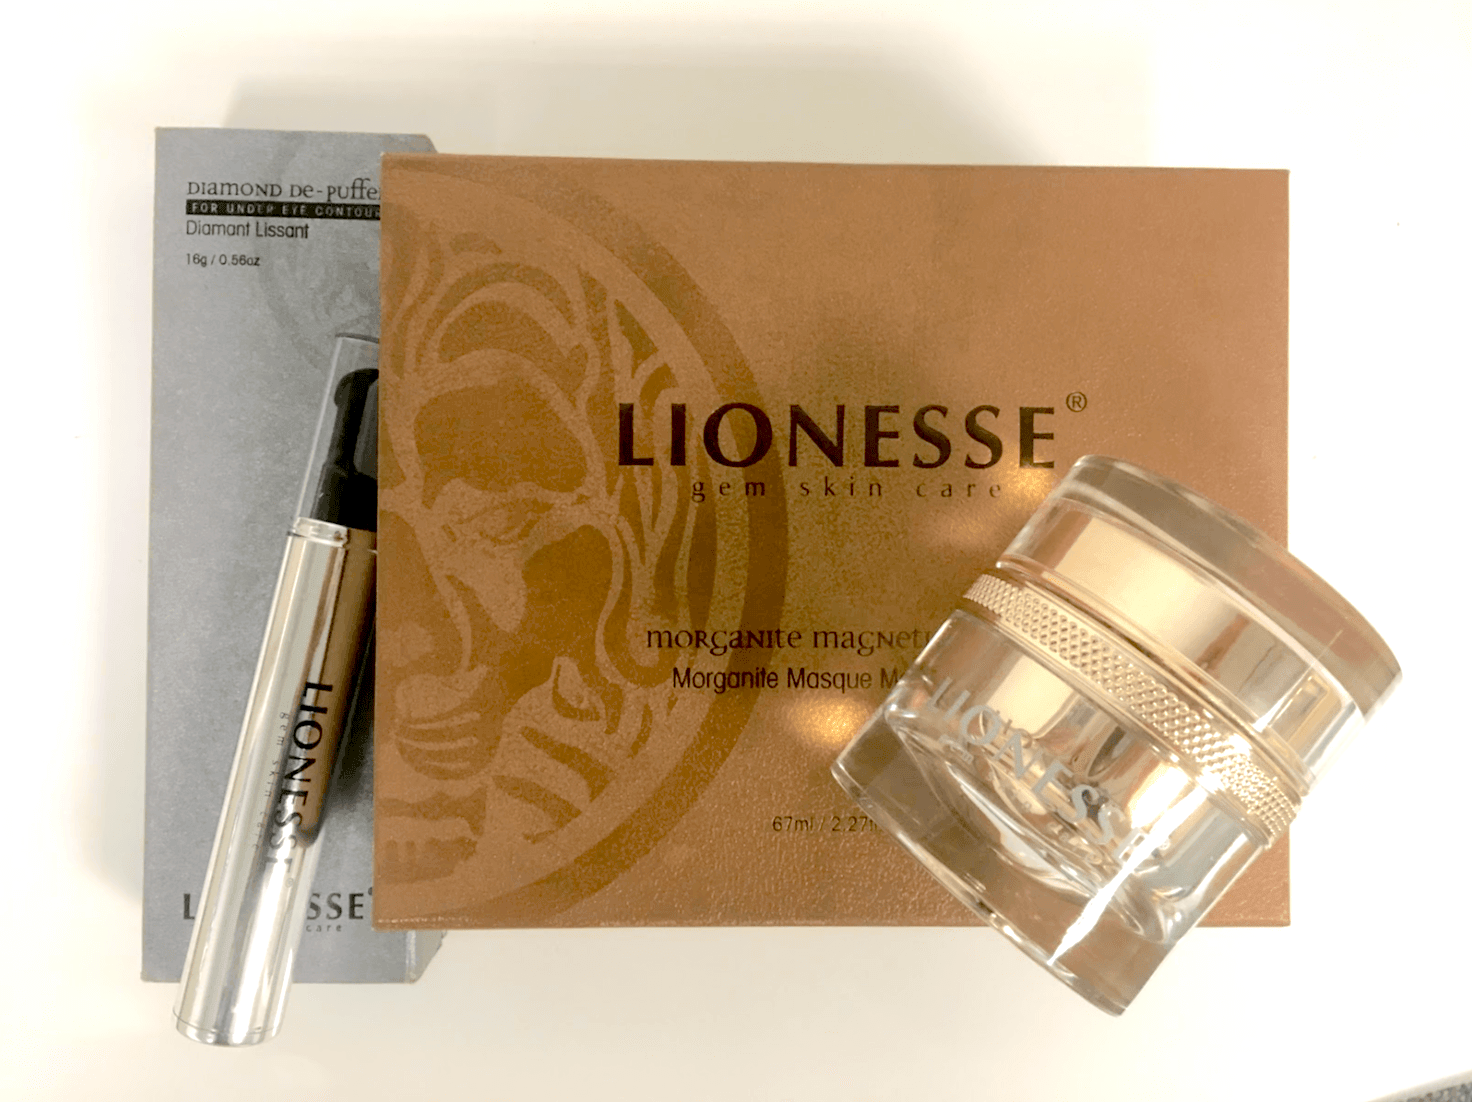 Lionesse Morganite Magnetic Mask and Diamond De-Puffer review